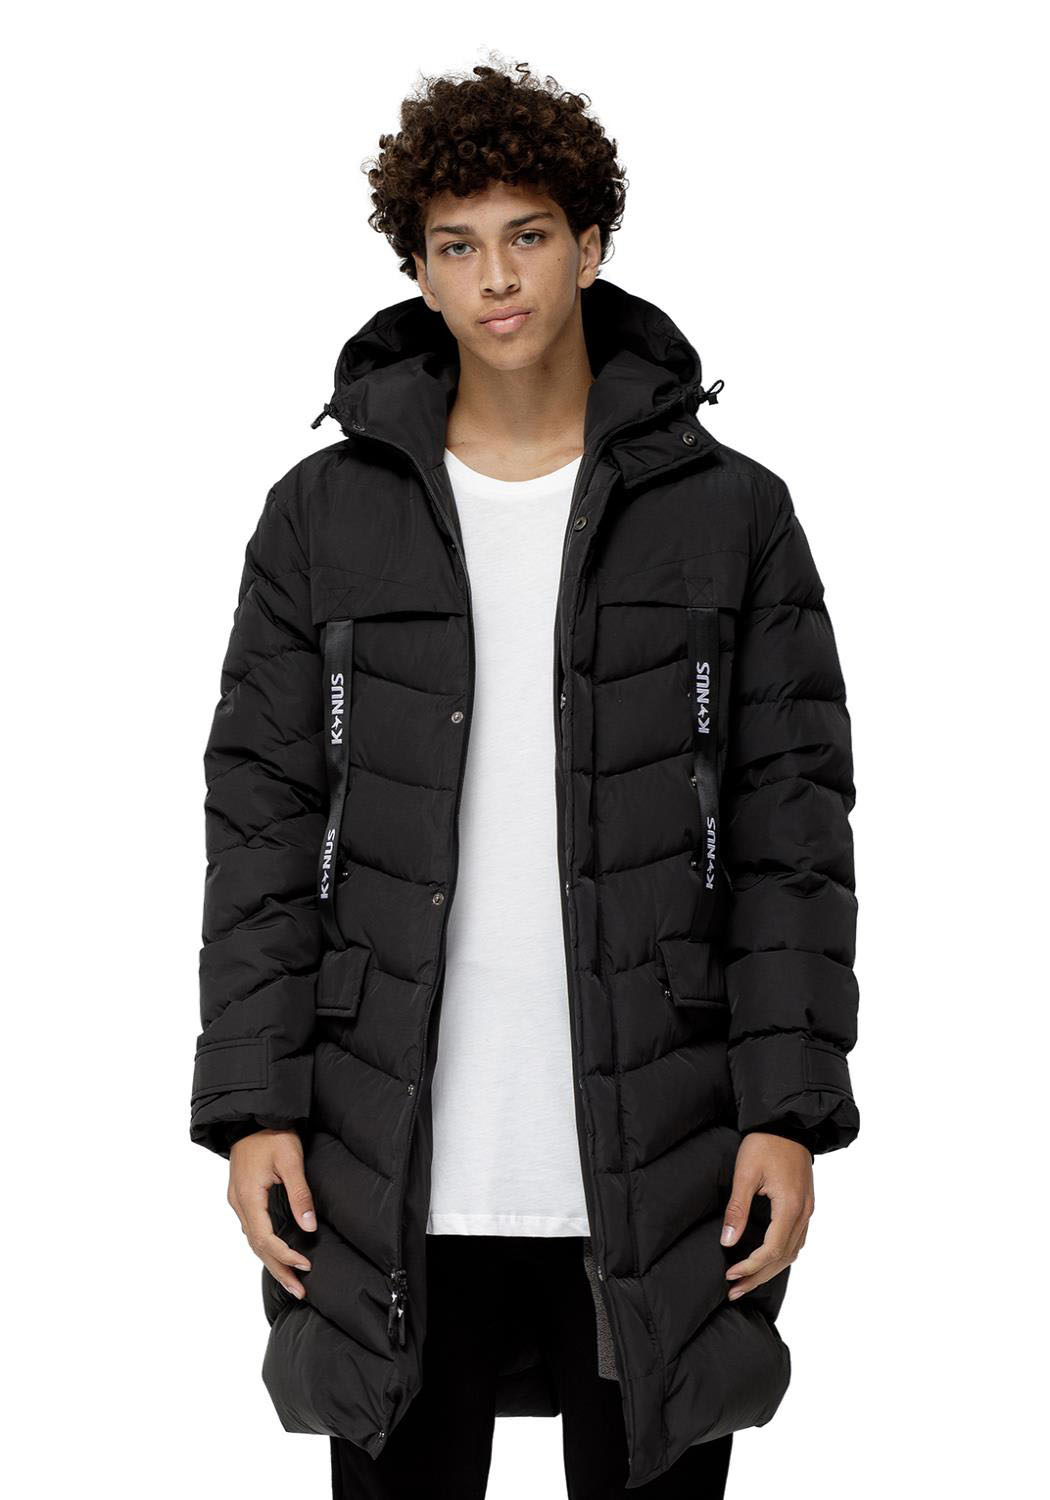 Konus Highland Long Parka Men Clothing